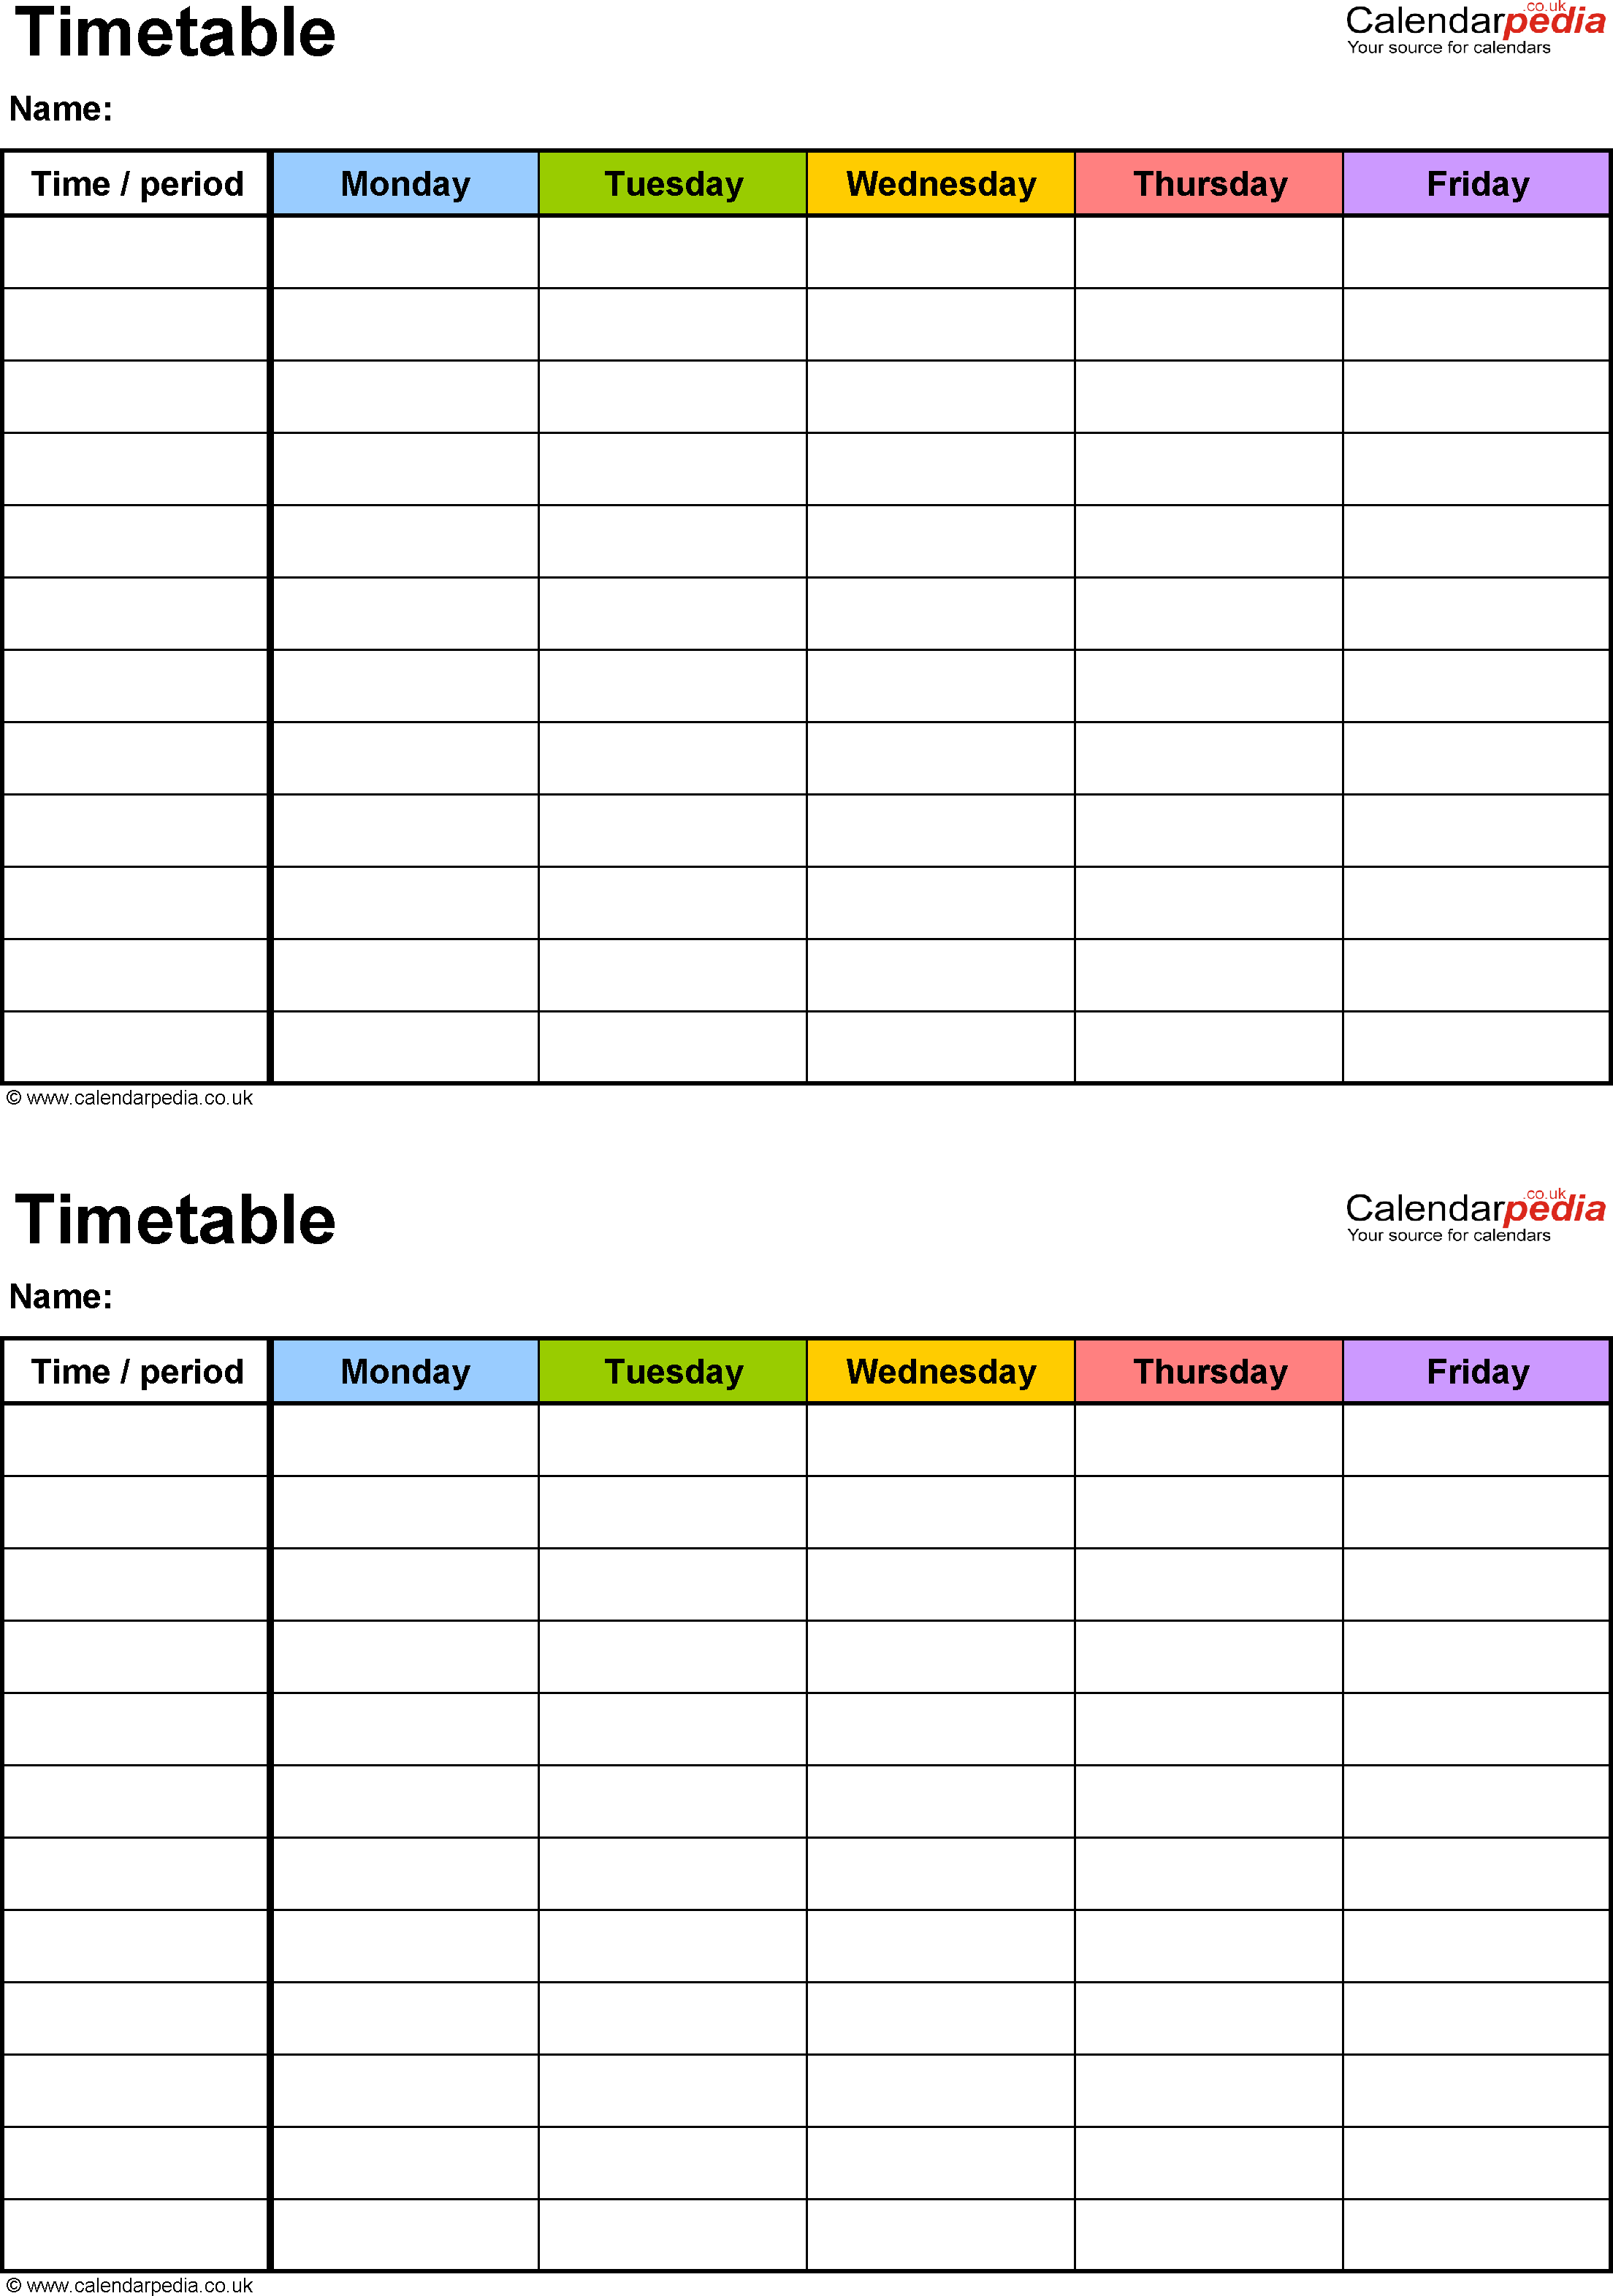 5 day timetable template